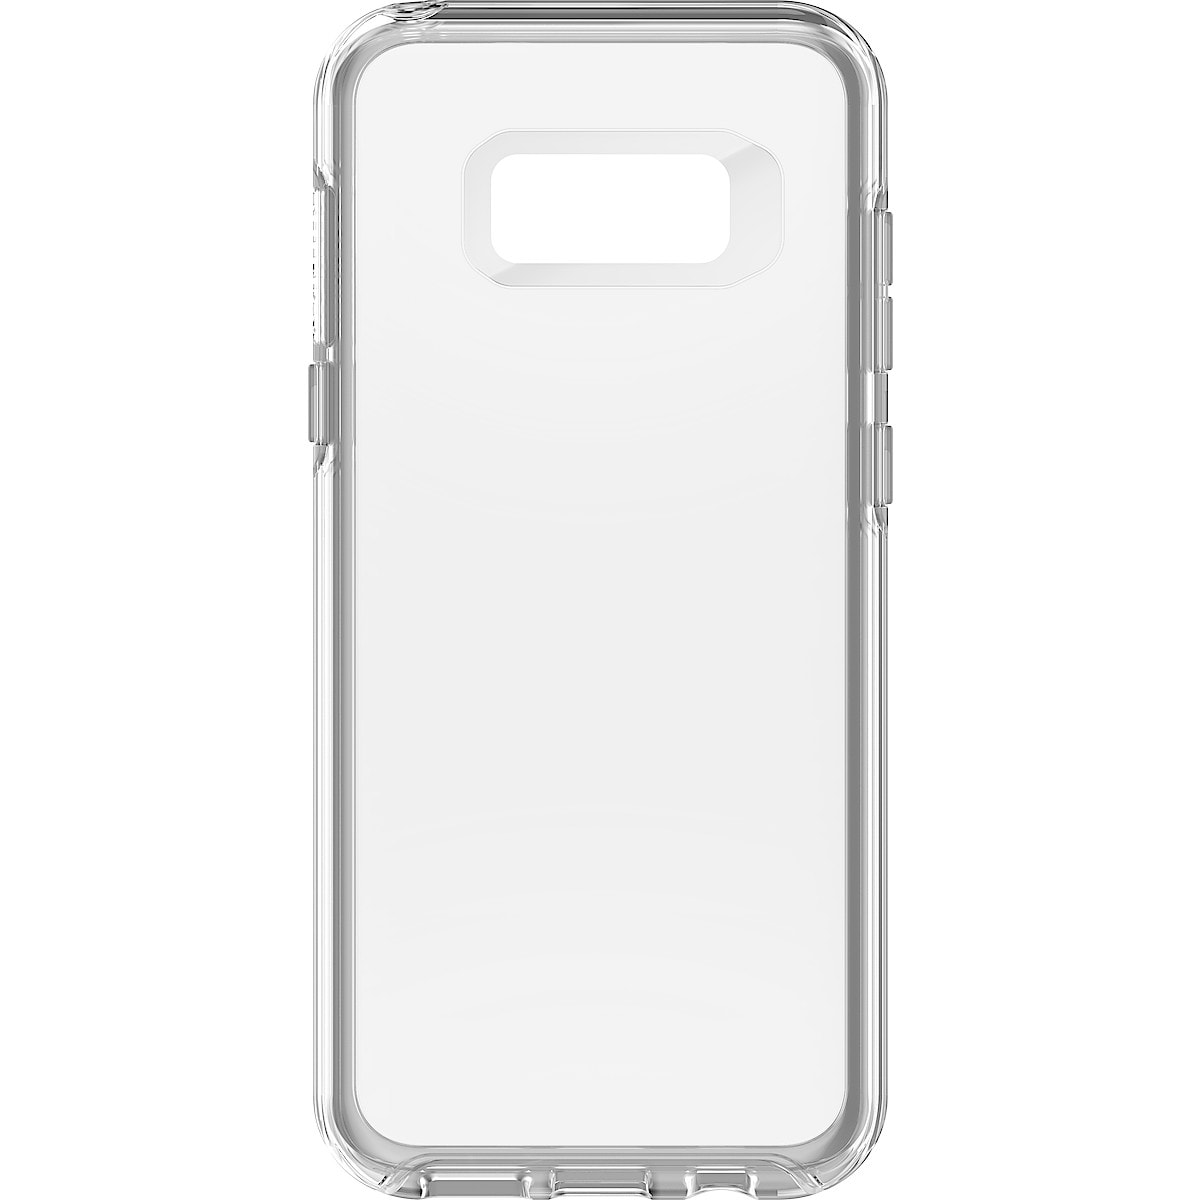 Otterbox Symmetry Protective Clear Case for Samsung Galaxy S8 Plus